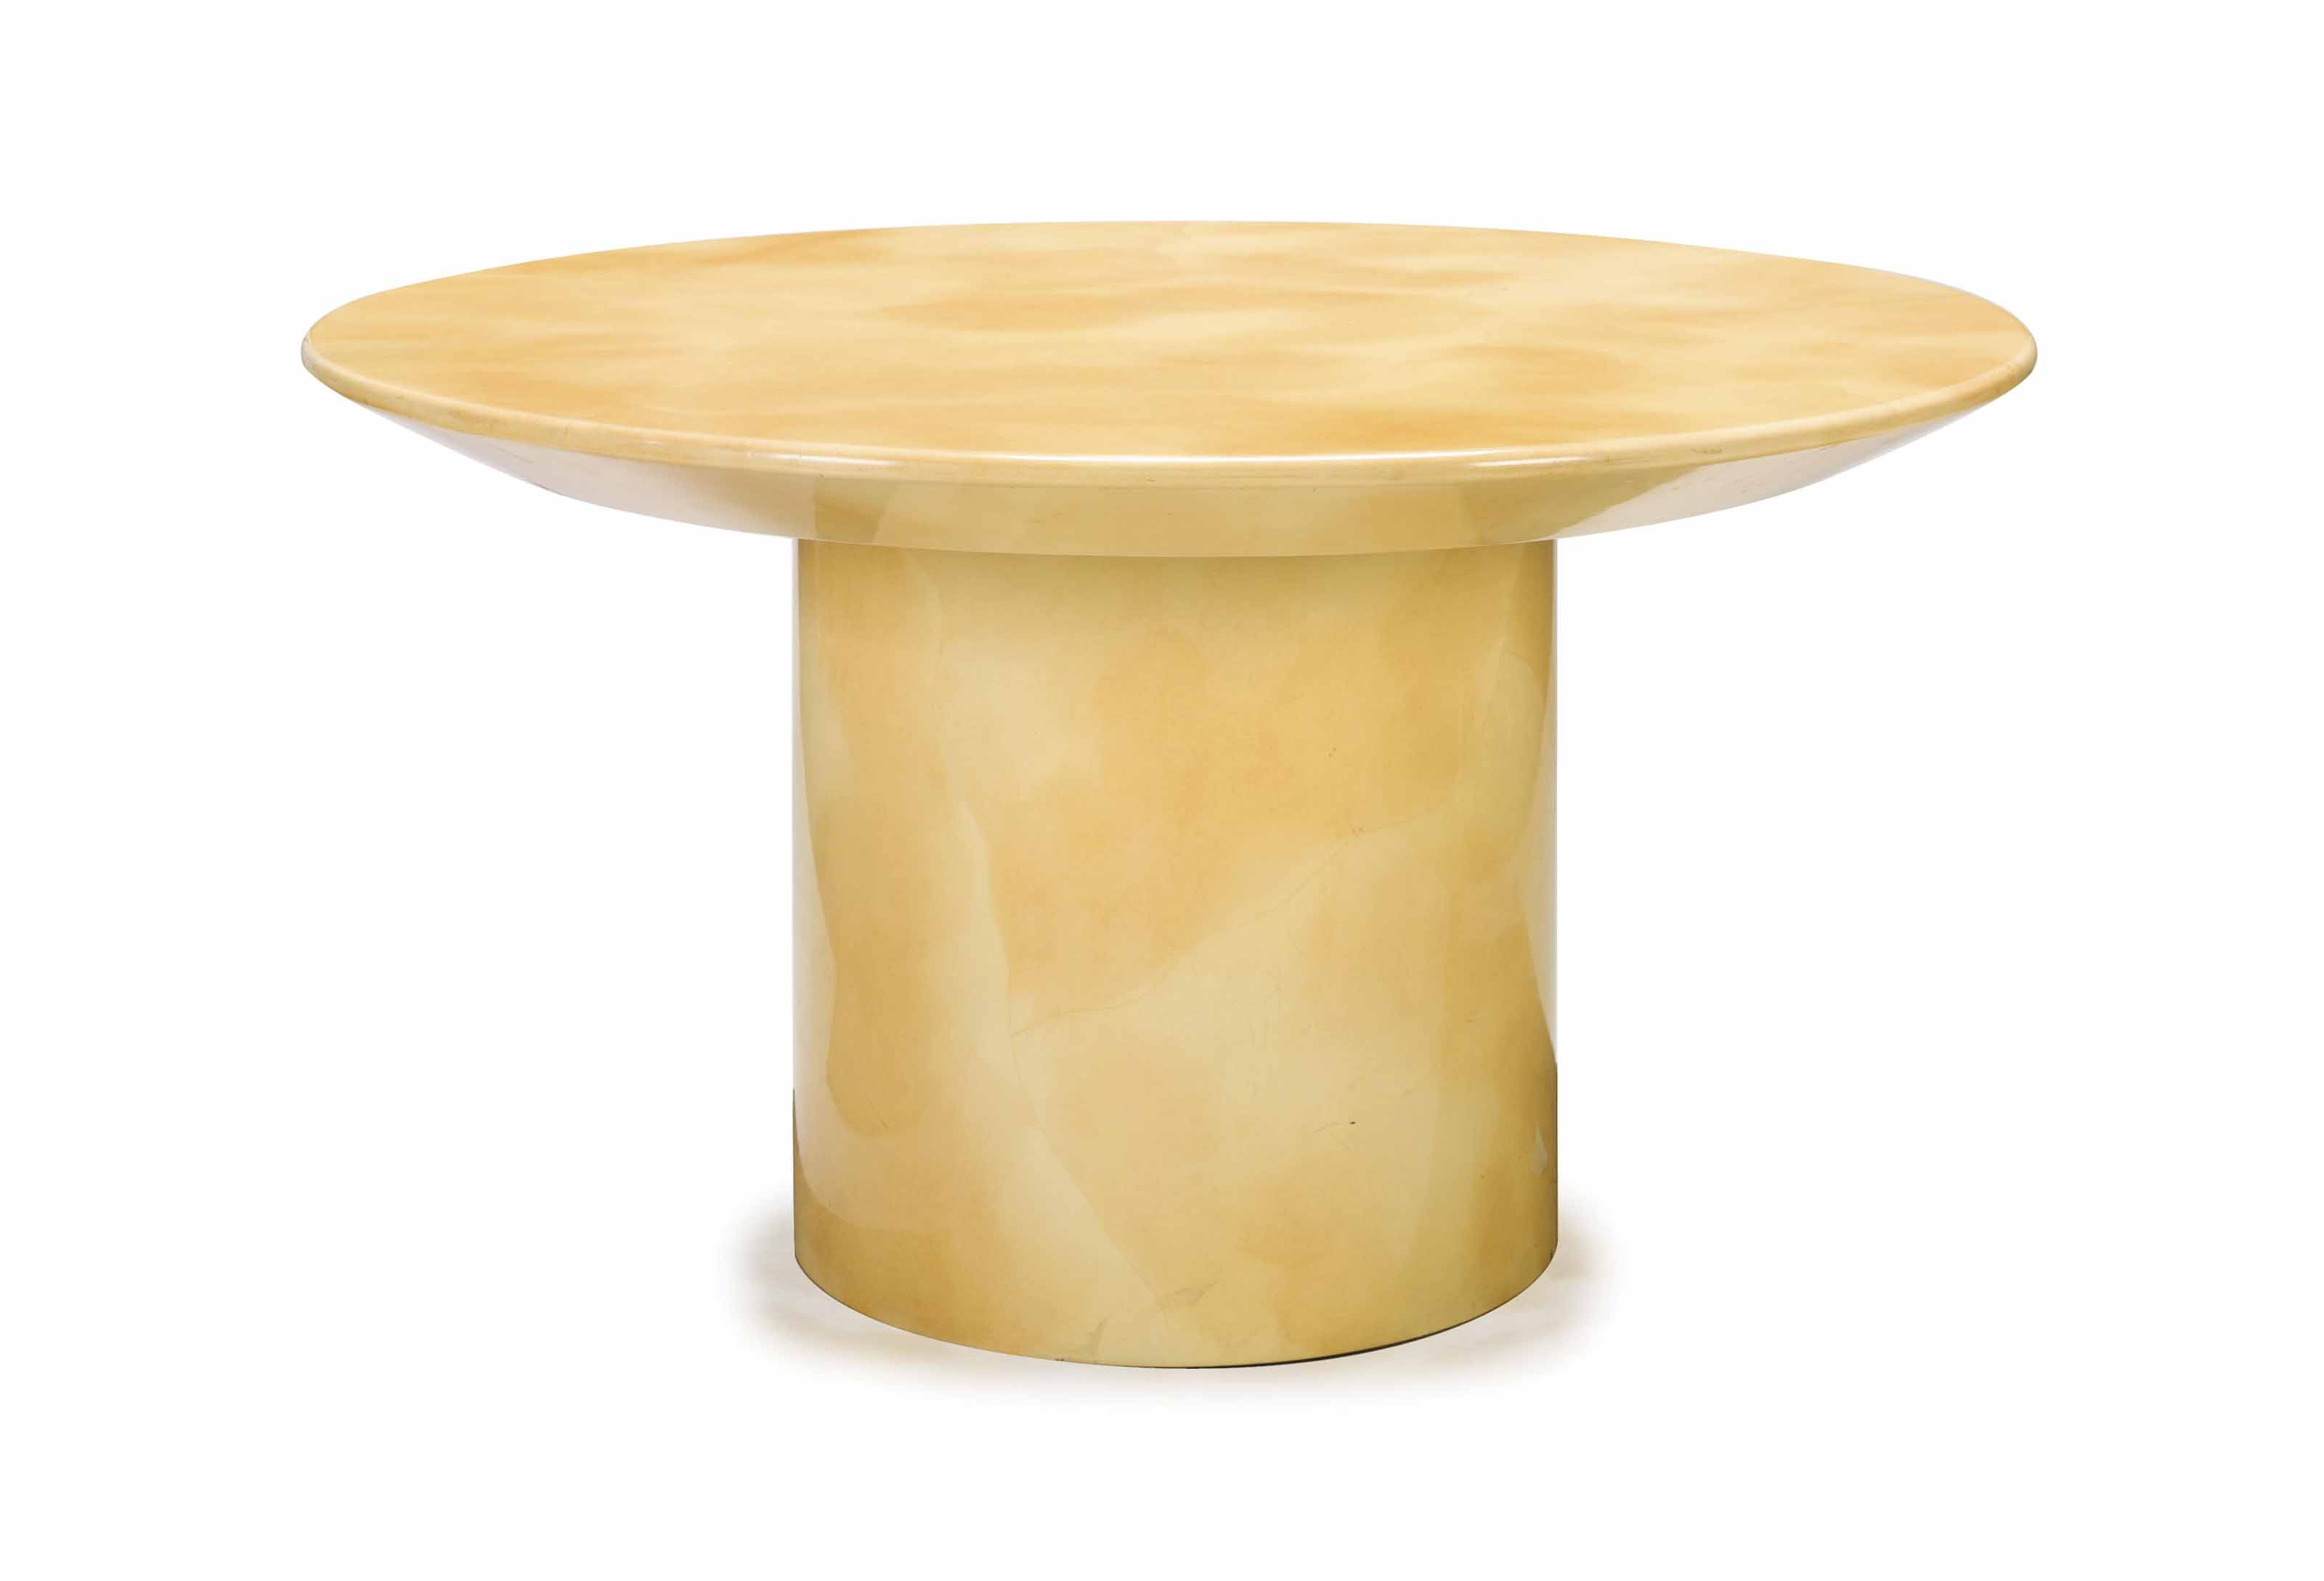 A Cream Lacquered Circular Dining Table Attributed To